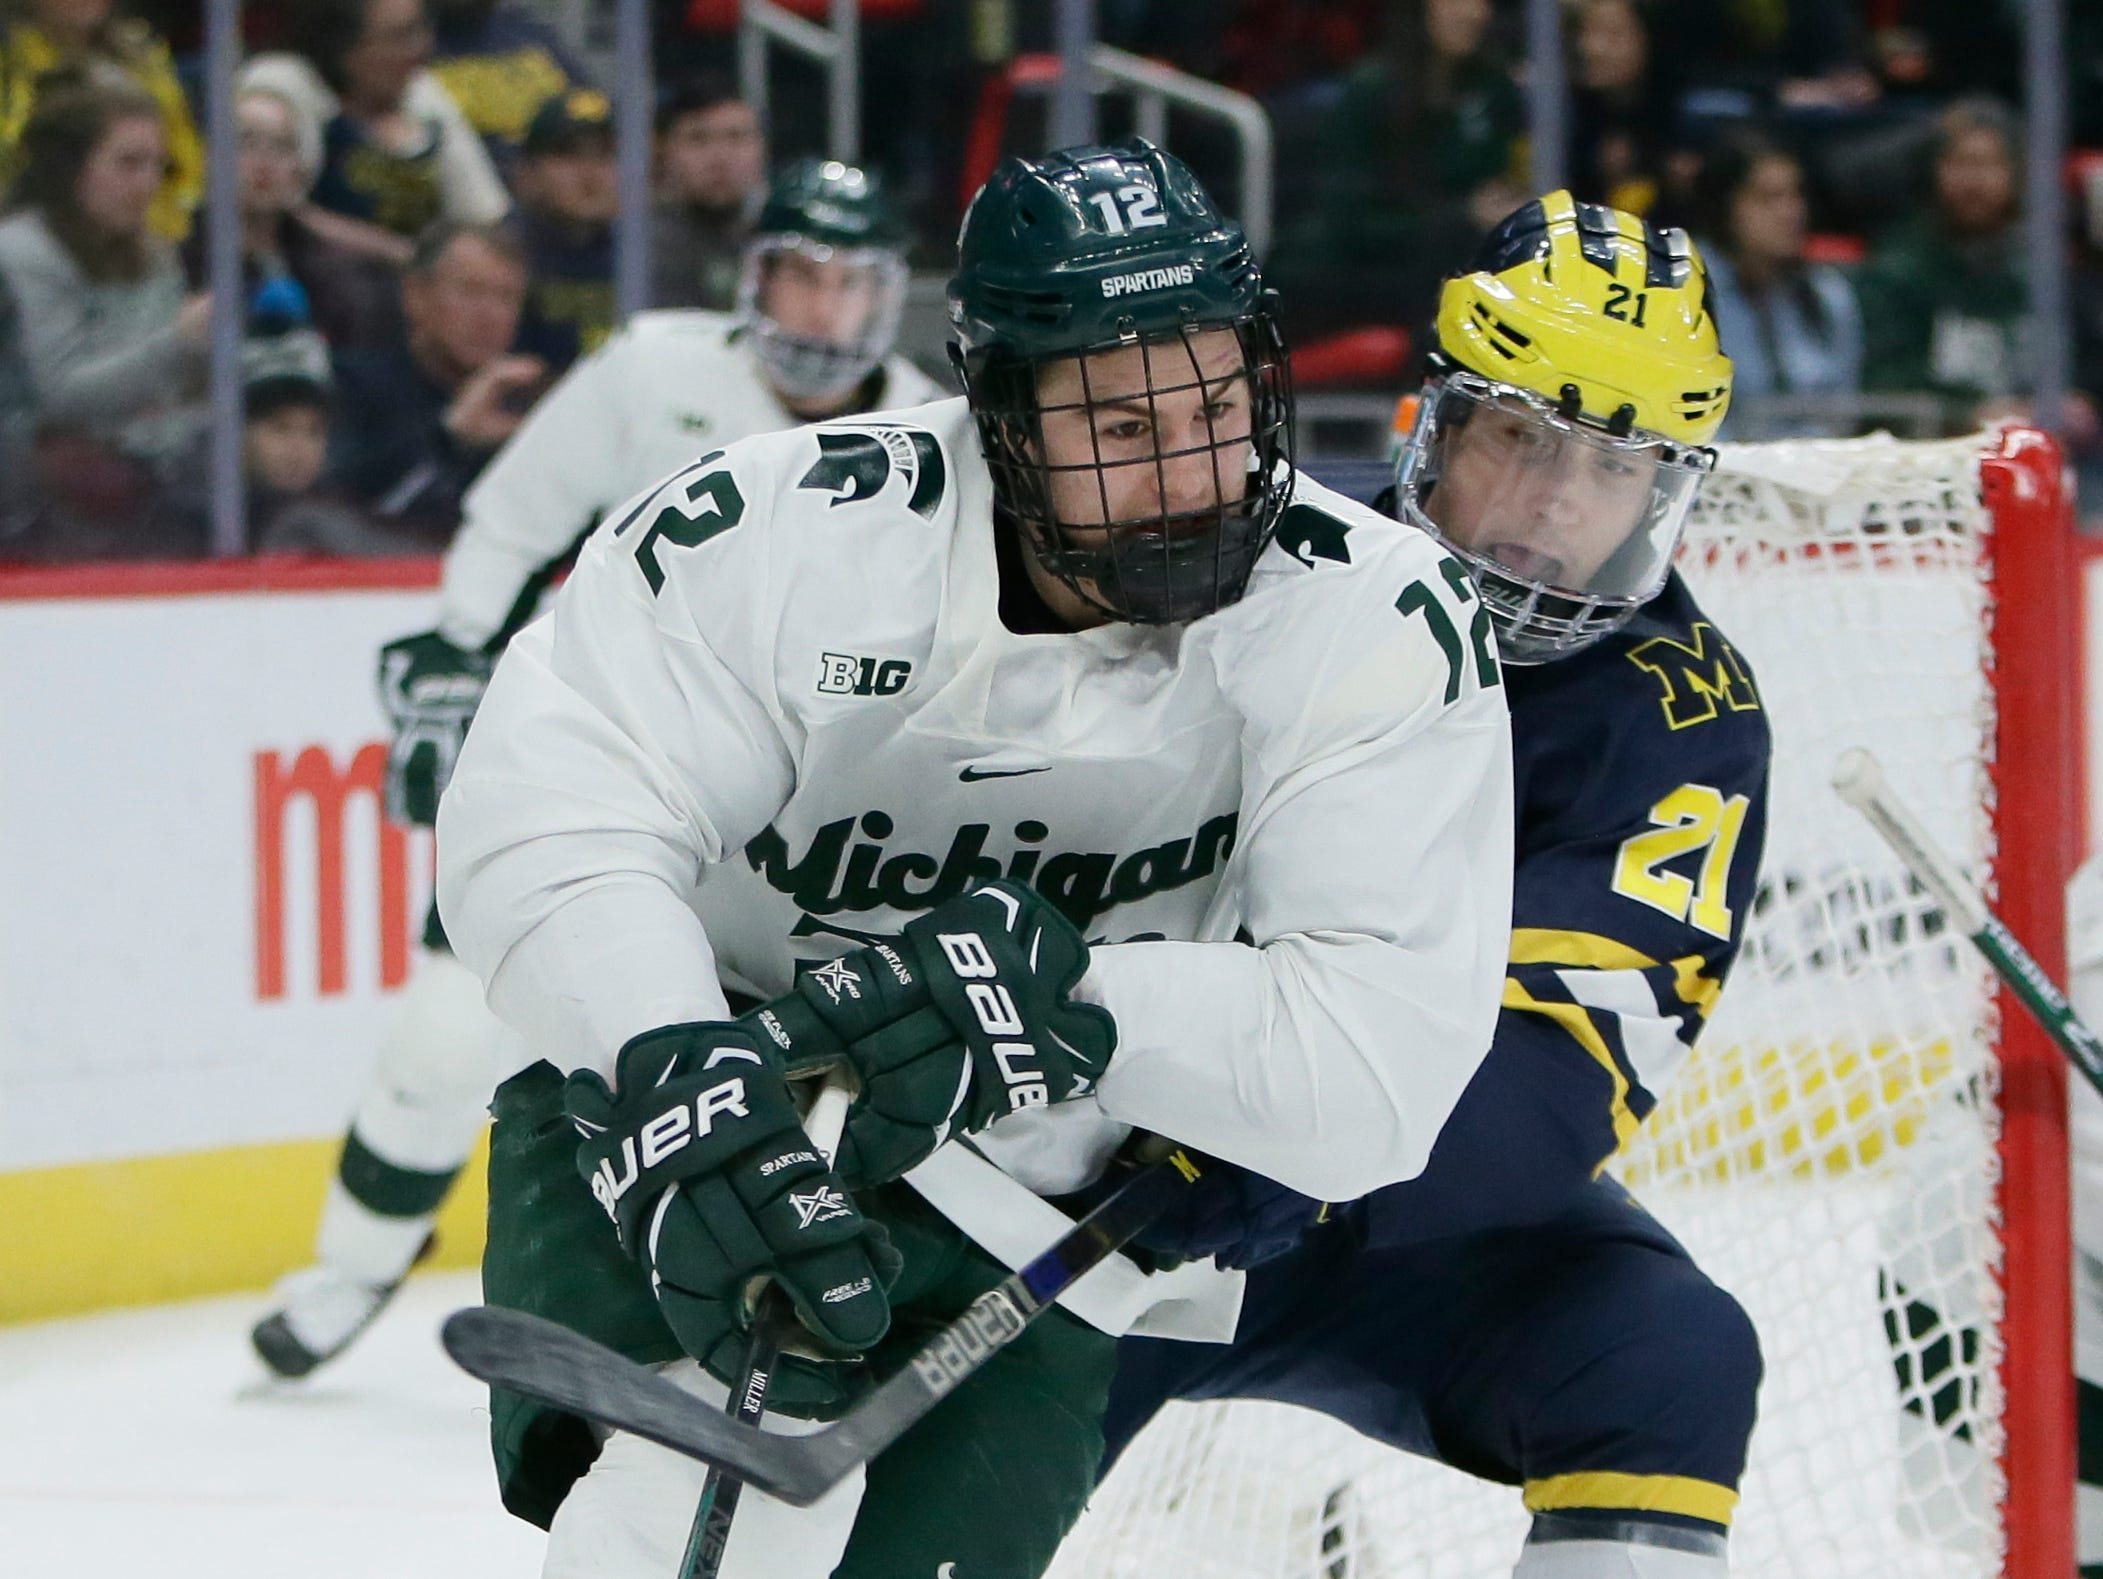 Michigan State defenseman Tommy Miller is pursued by Michigan forward Michael Pastujov during the first period on Saturday, Feb. 9, 2019, at Little Caesars Arena.